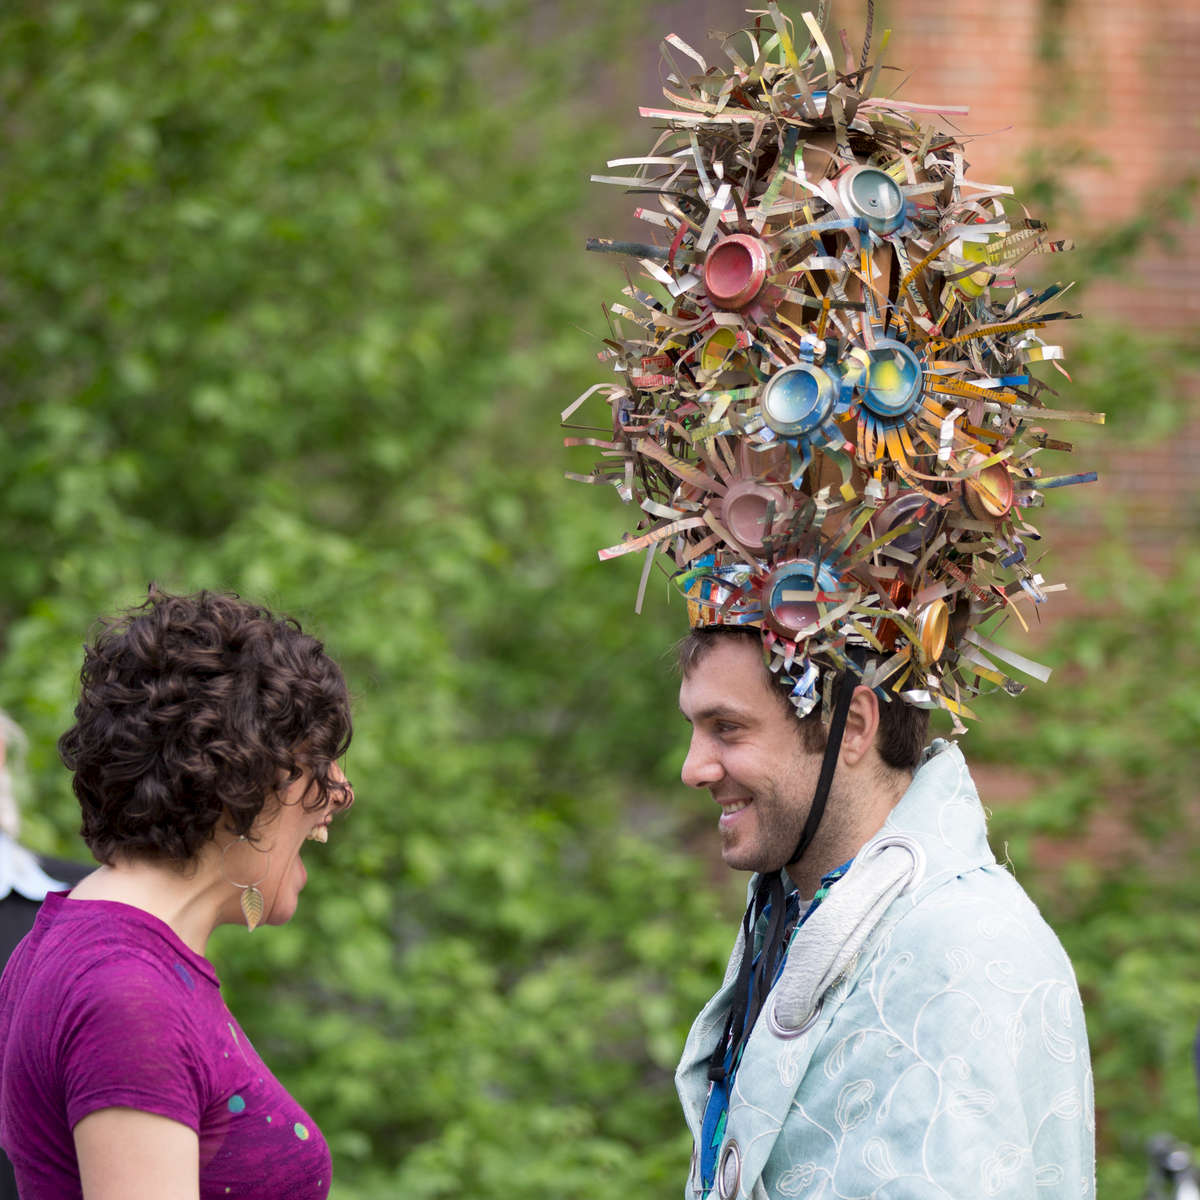 A participant in the 6th annual Mudball Ball talks with a friend at el jardinde paradiso on 4th st between Ave's C and D . The Winter Flower Crown is made of previously used cans by trash worship artist Rolando Politi aka Kappo Kappino. The 6th Mudball Ball is a garden celebration of bioremediation.